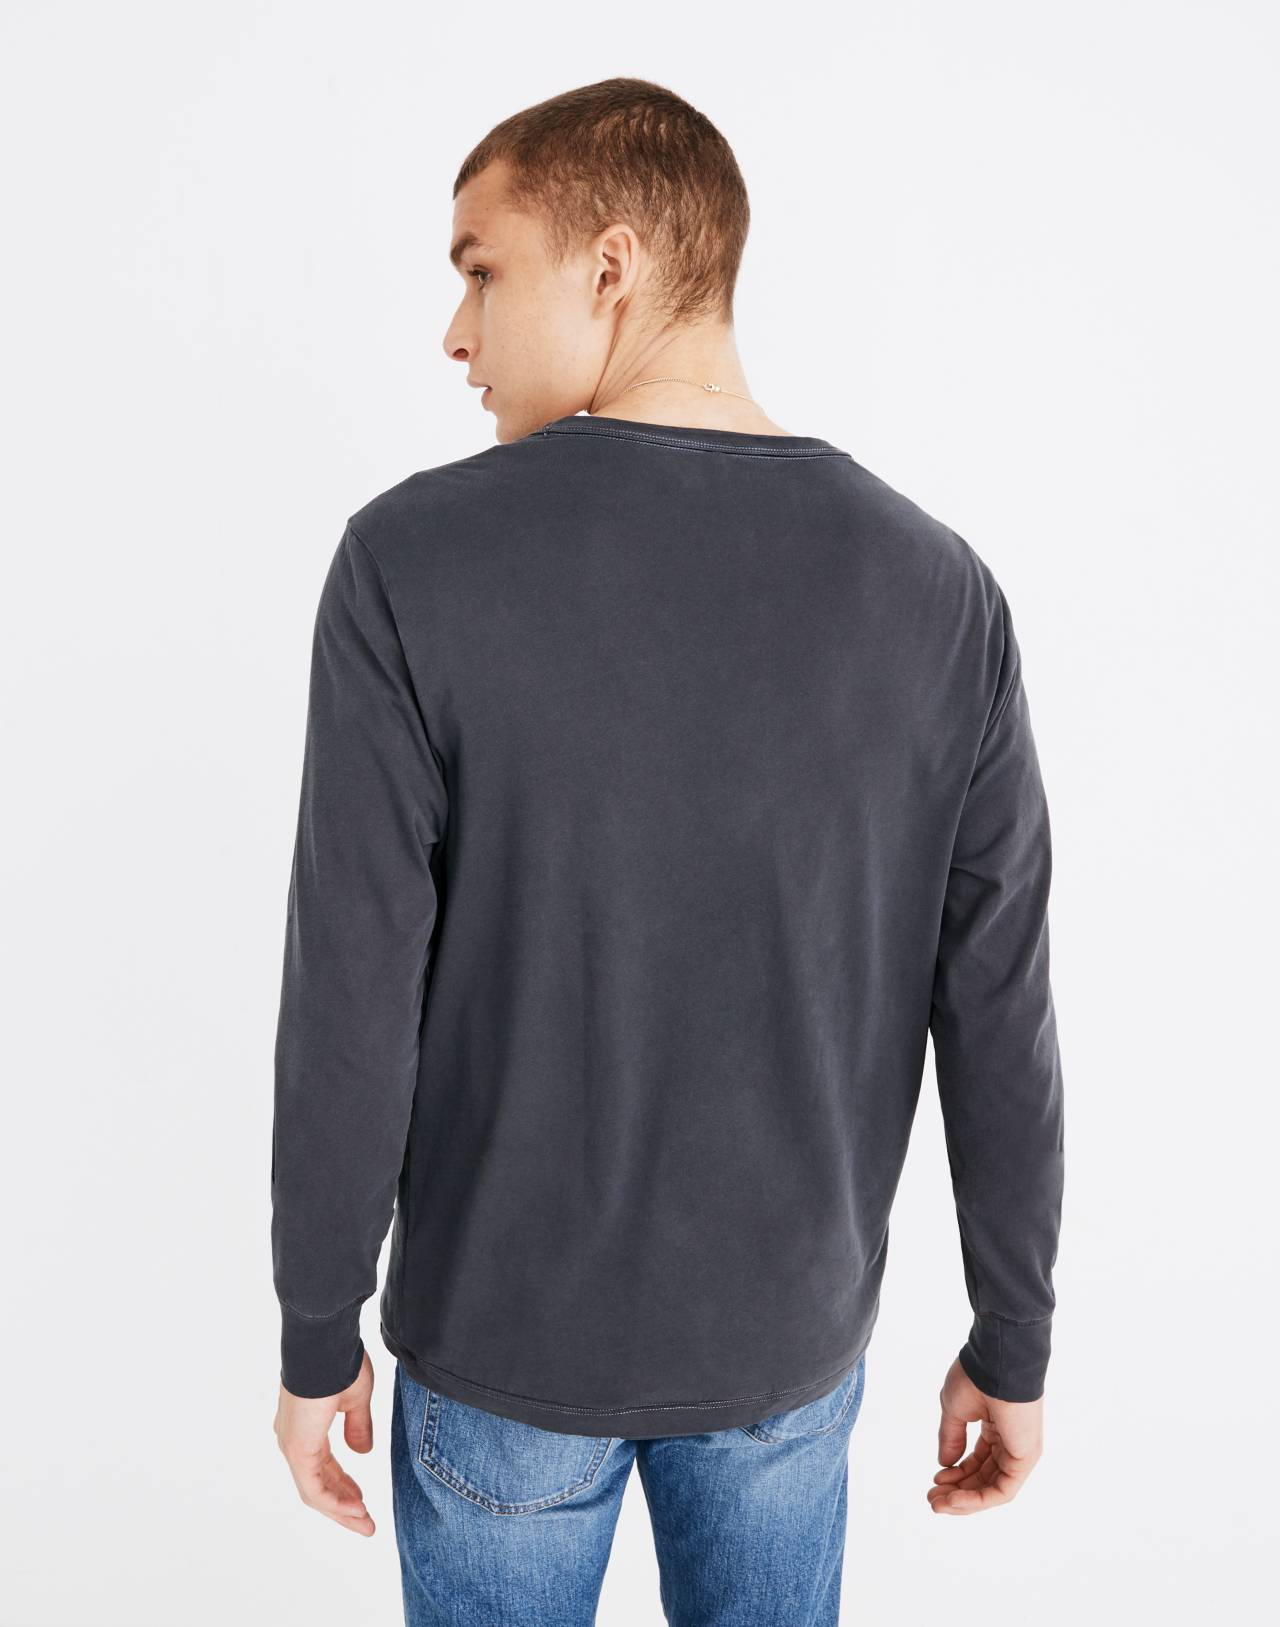 Garment-Dyed Daily Crewneck Long-Sleeve Tee in classic black image 3